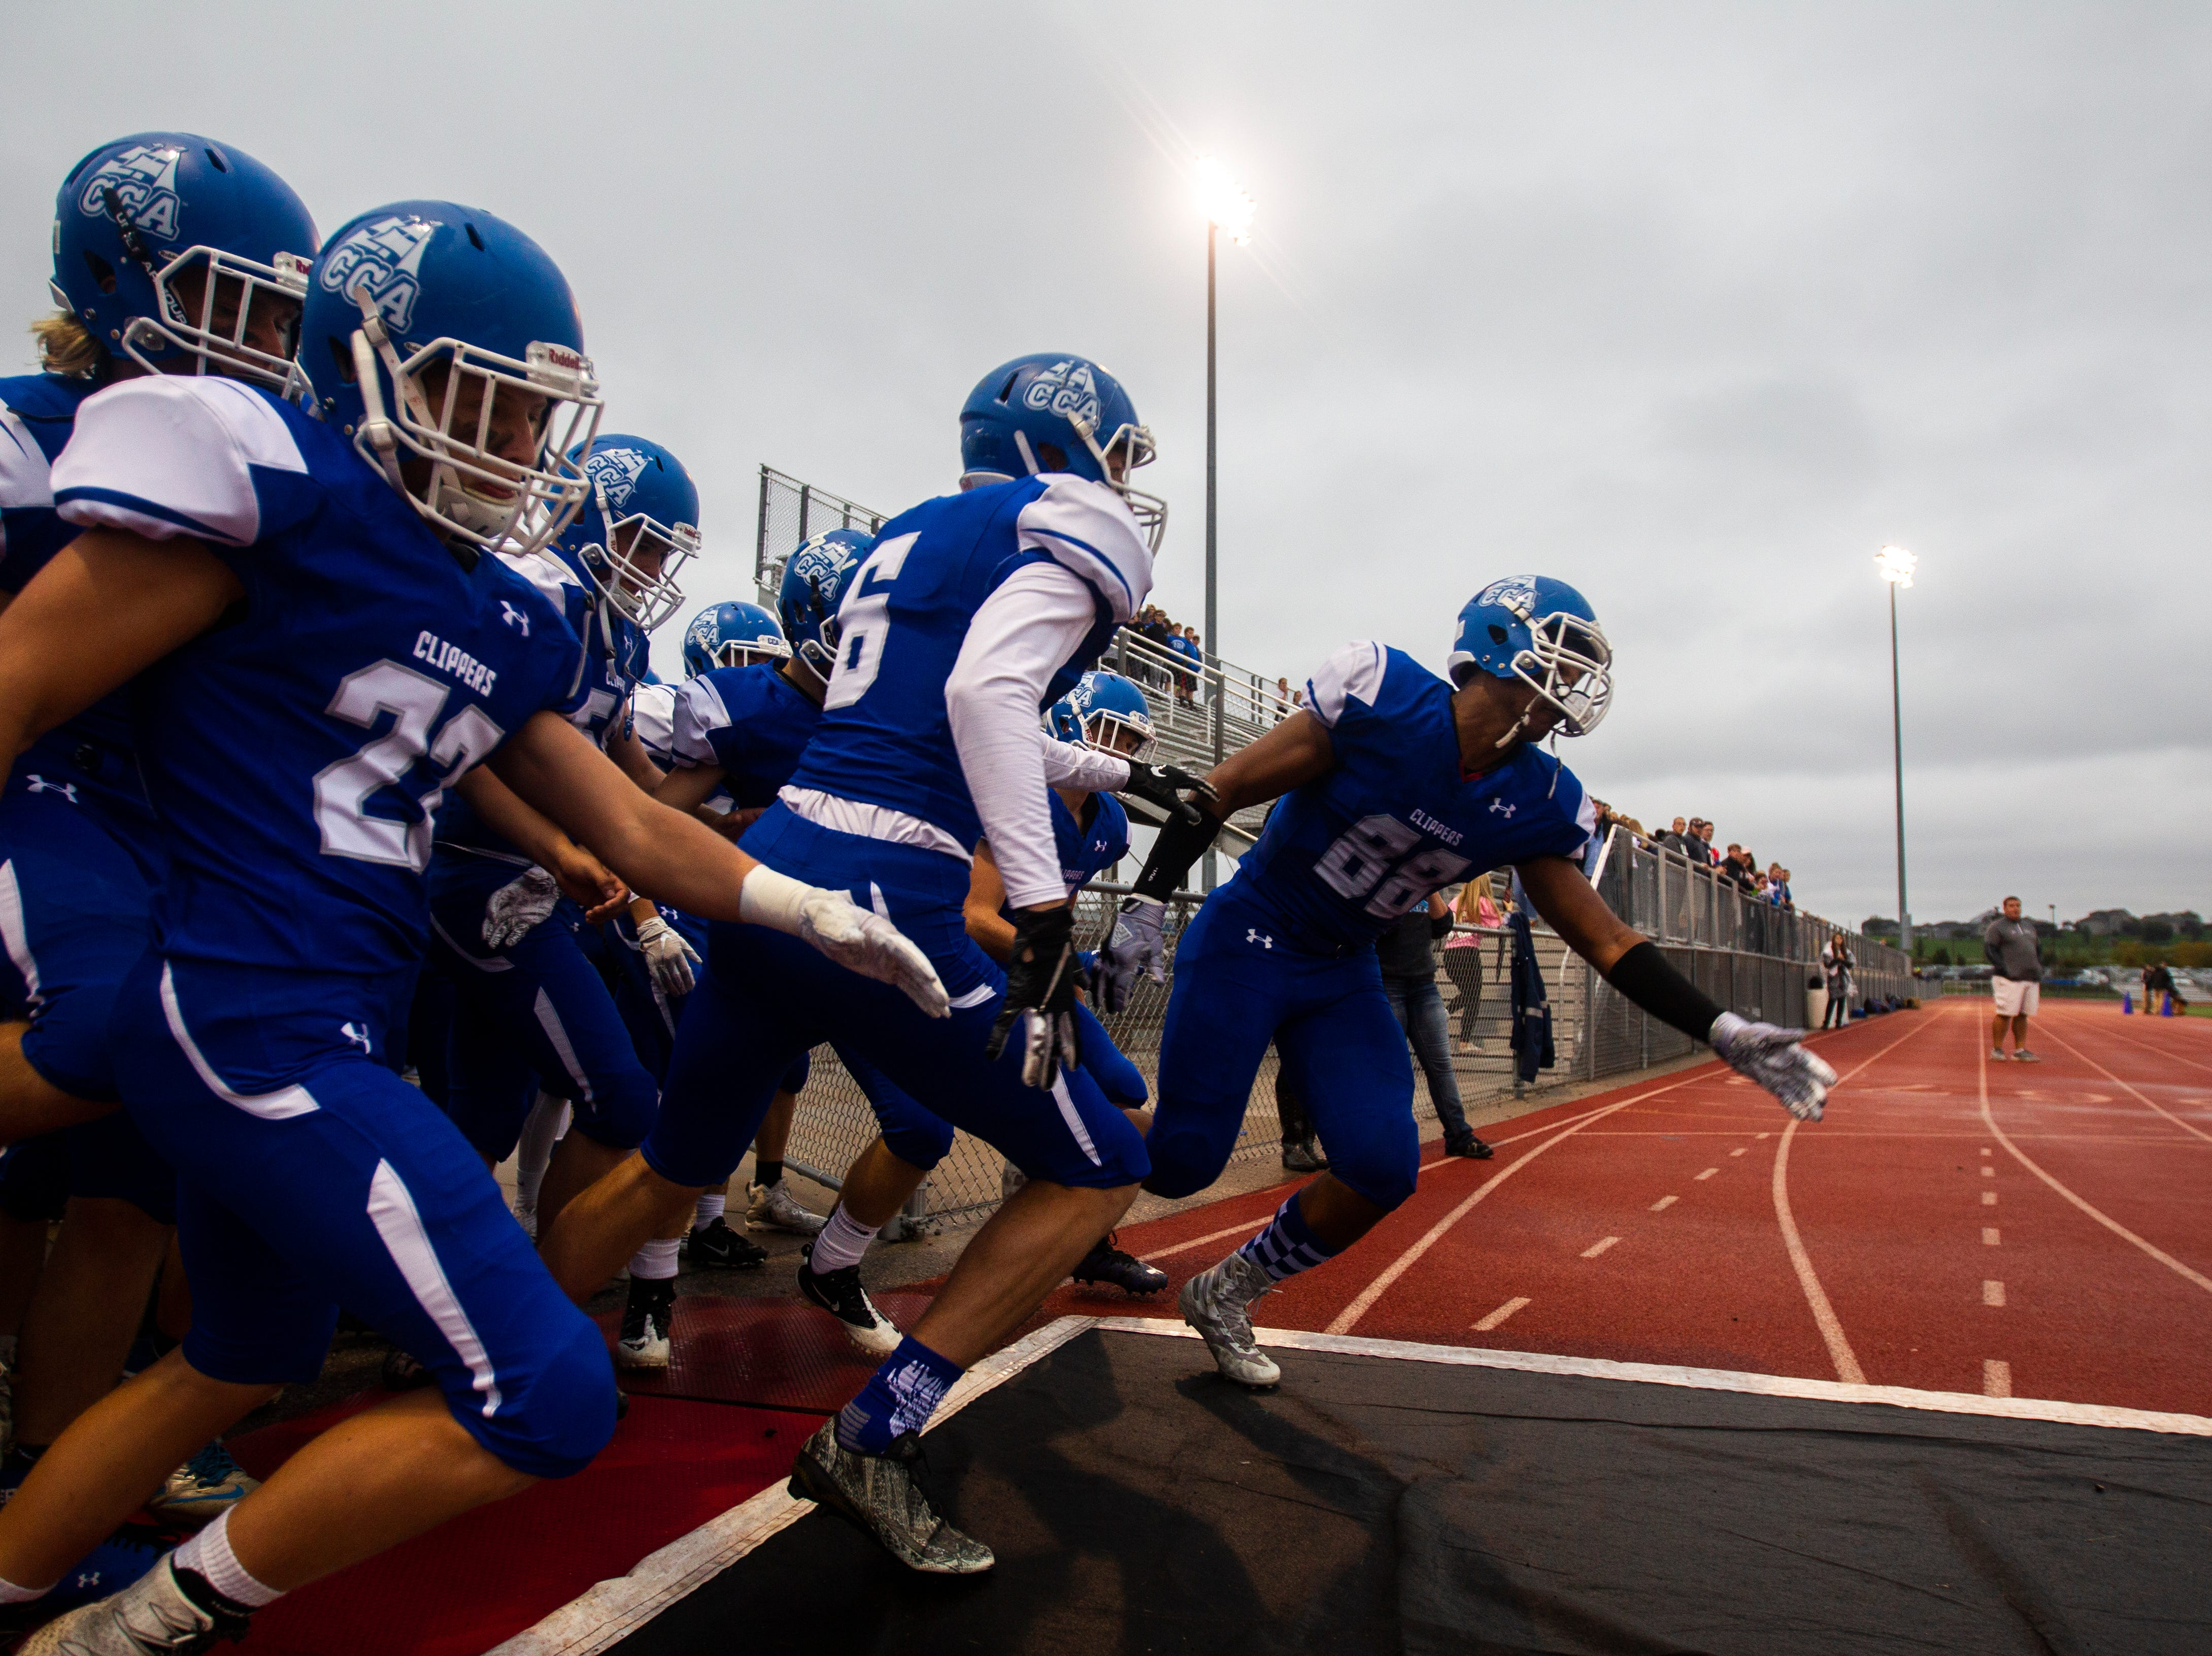 Clear Creek Amana's T.J. Bollers (88) leads his teammates onto the field during a Class 3A varsity football game on Friday evening, Oct. 5, 2018, at Clear Creek Amana Stadium in Tiffin, Iowa.